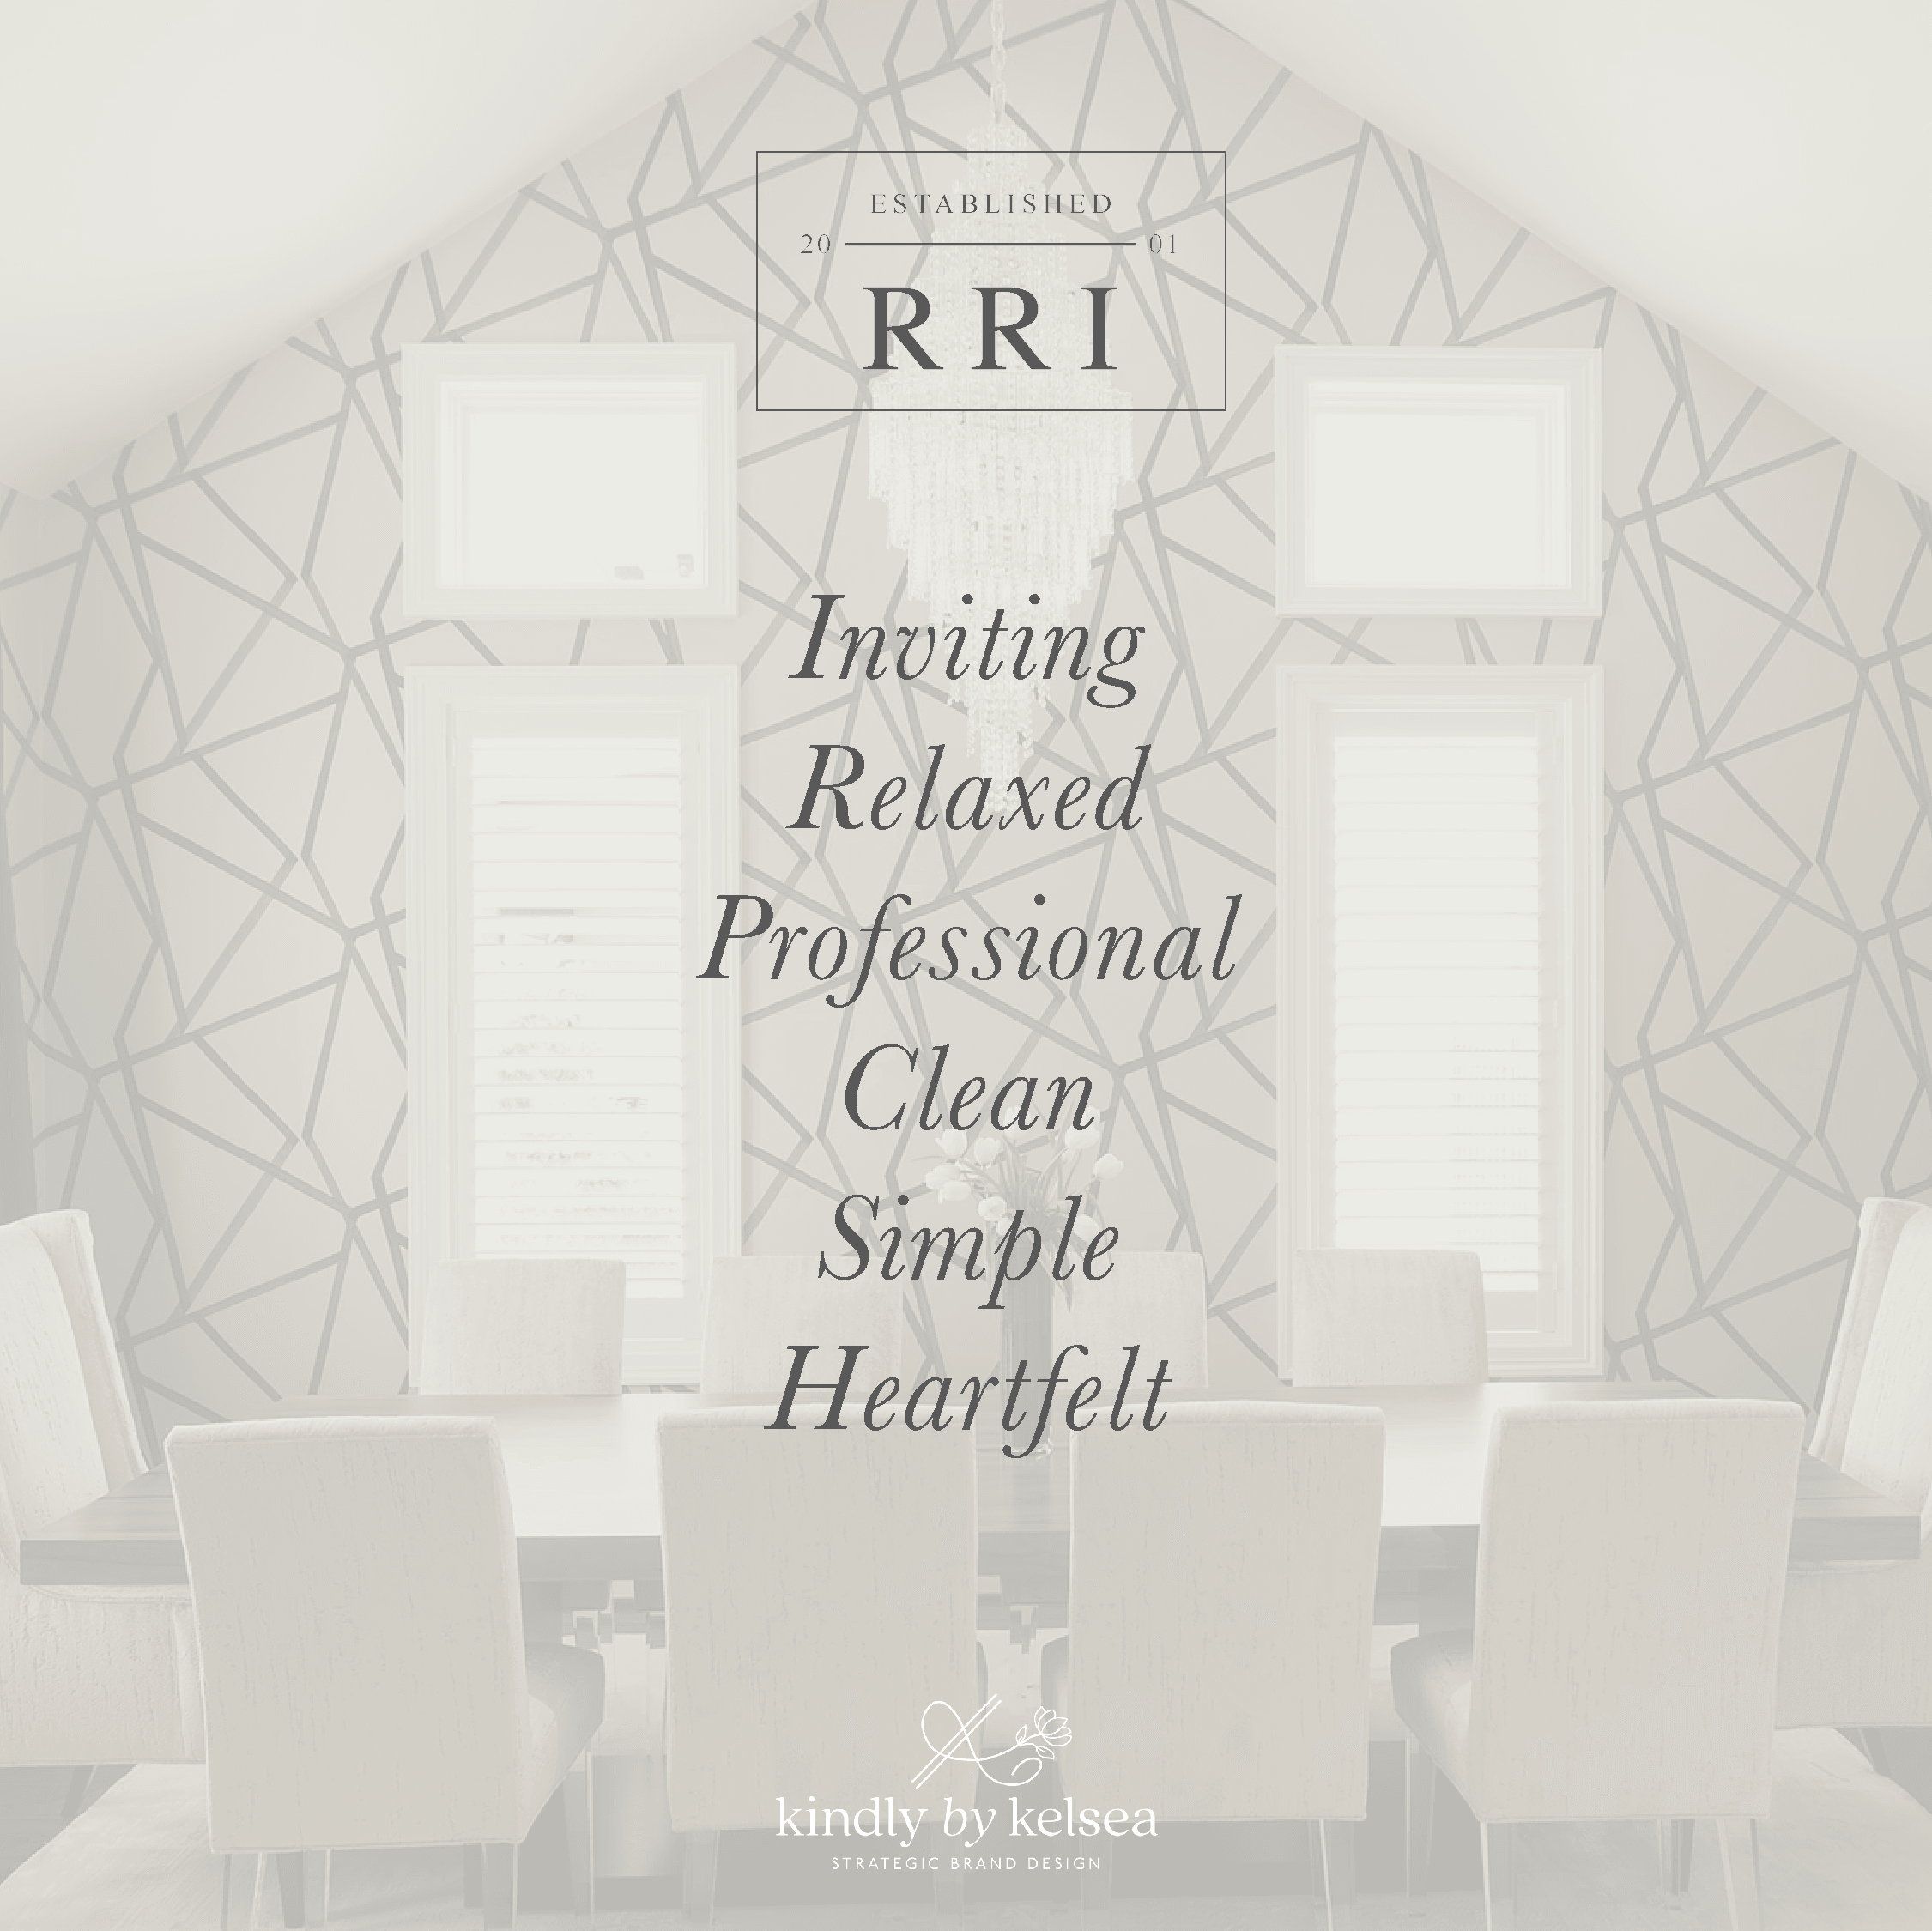 Rainey Richardson Interiors Houston Interior Designer | Logo and Brand Design by Kindly by Kelsea